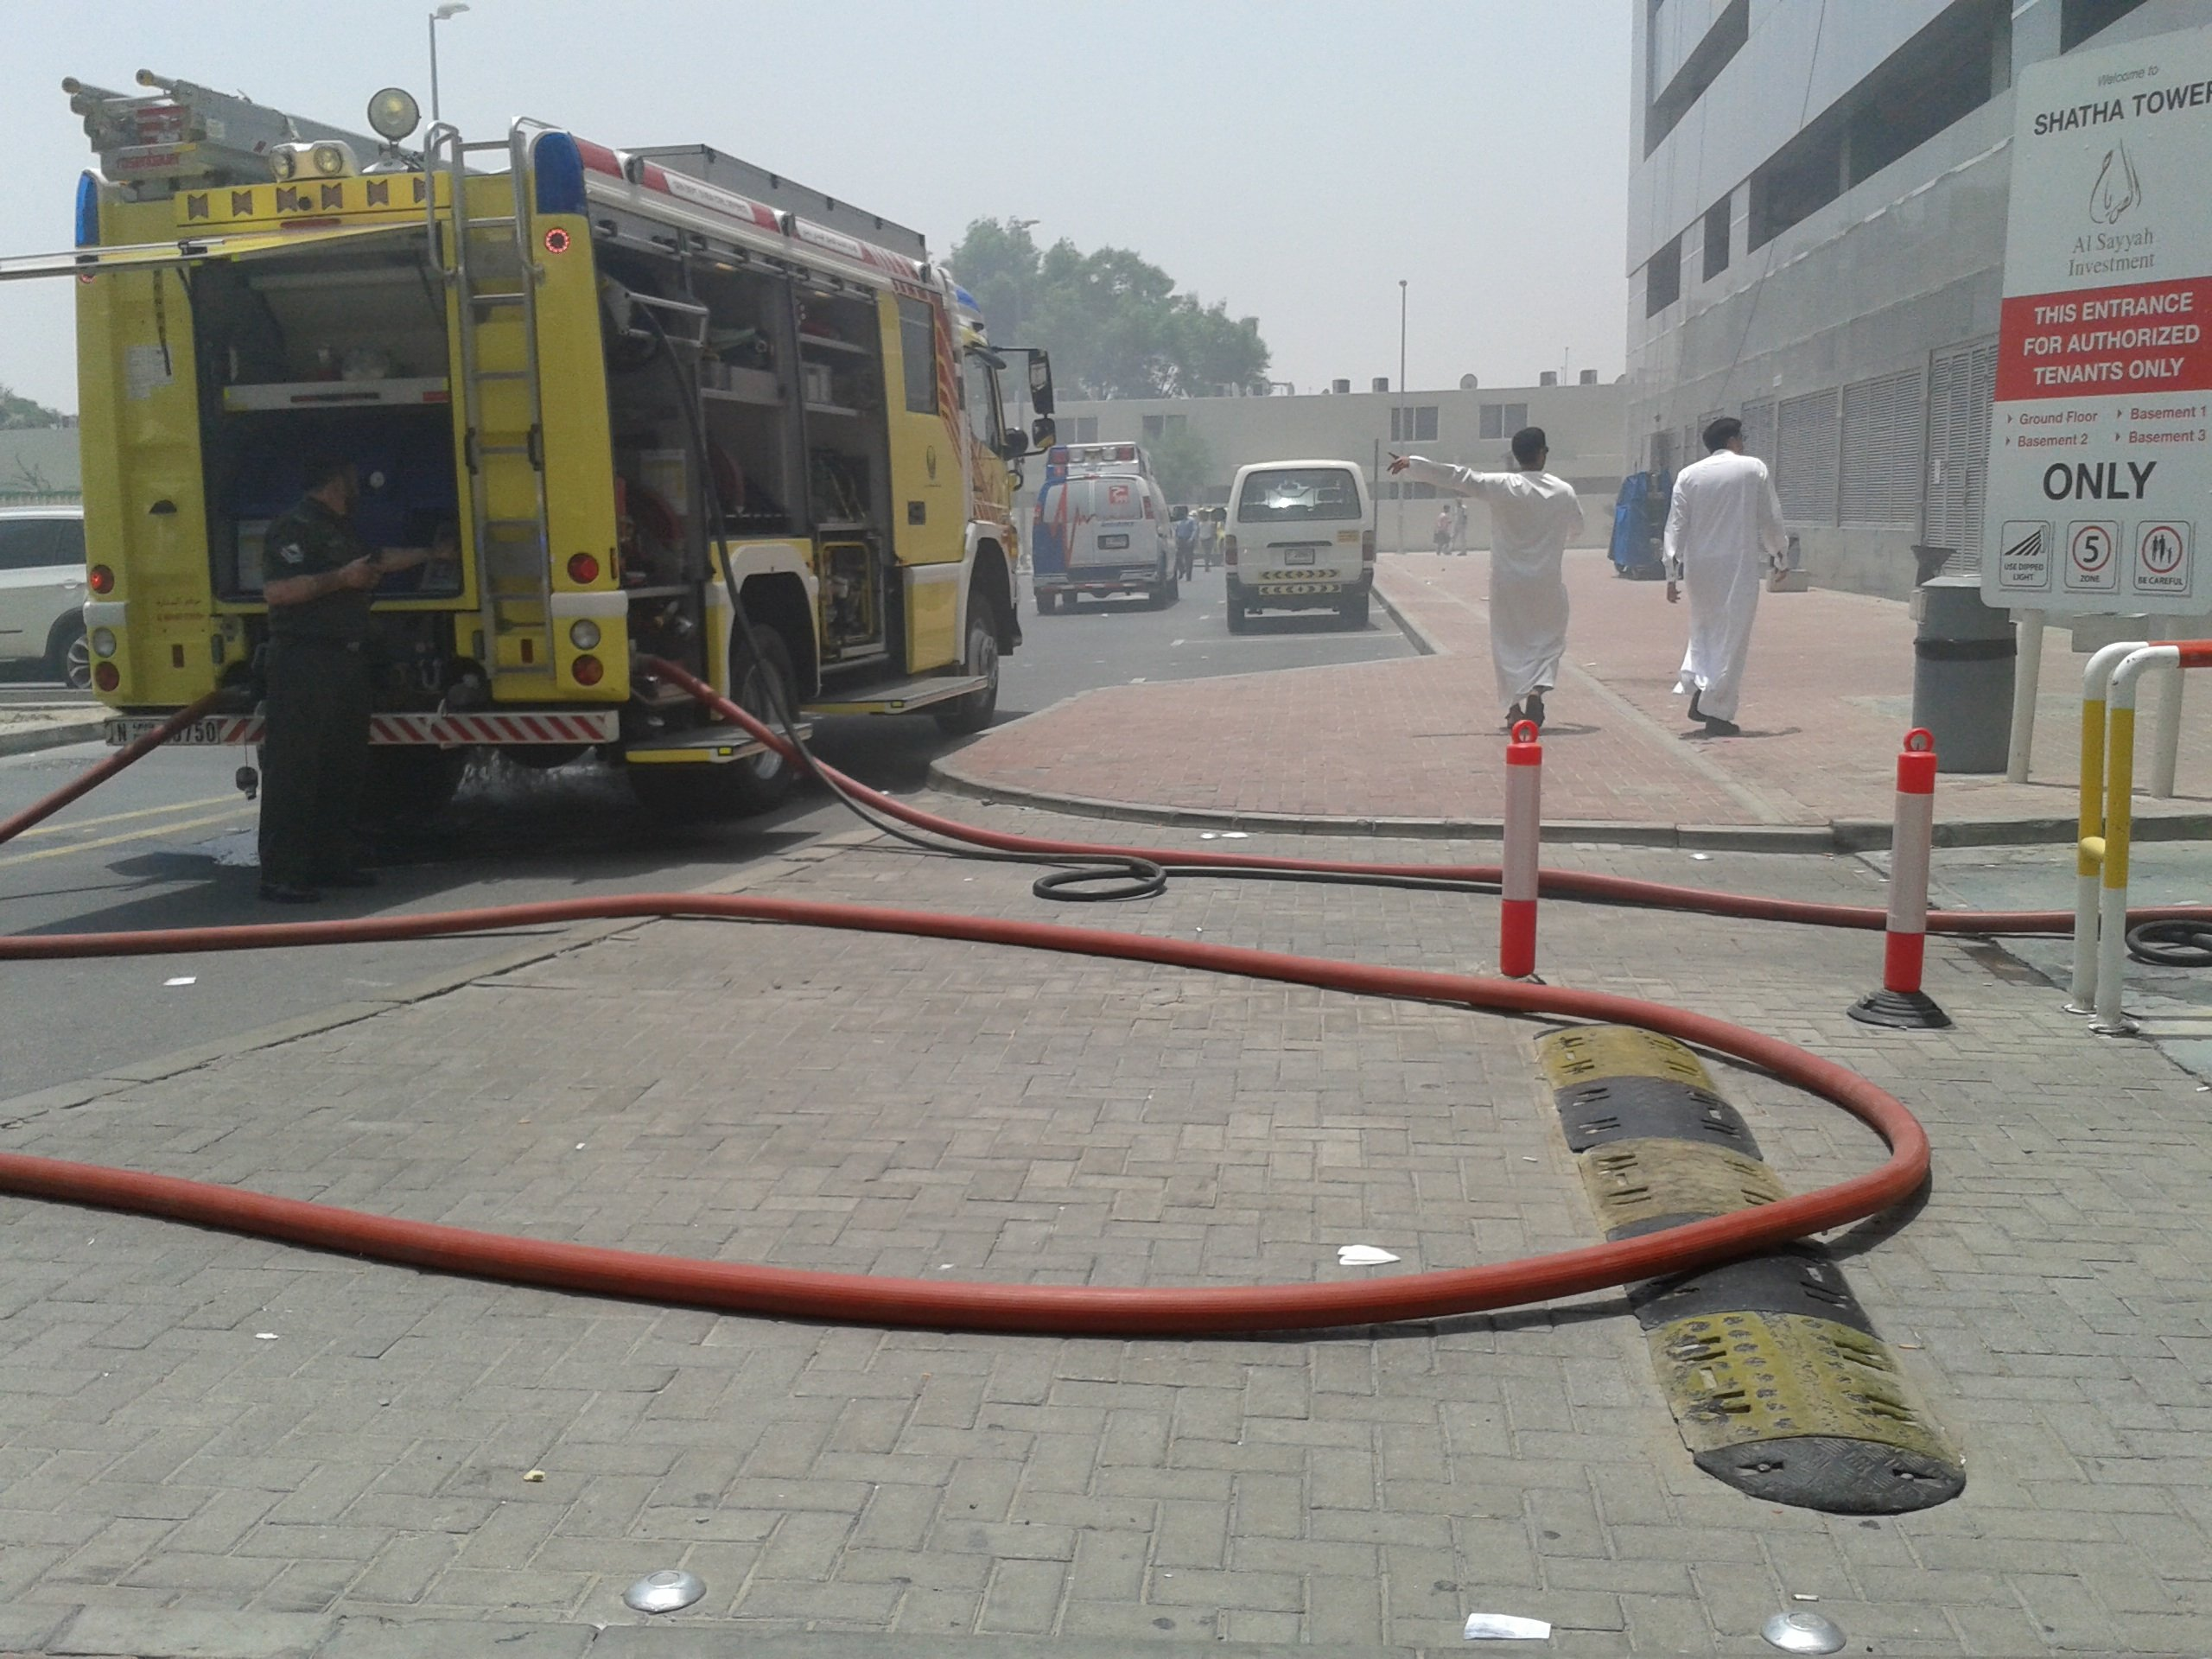 Pictures: Fire In Dubai Media City Building